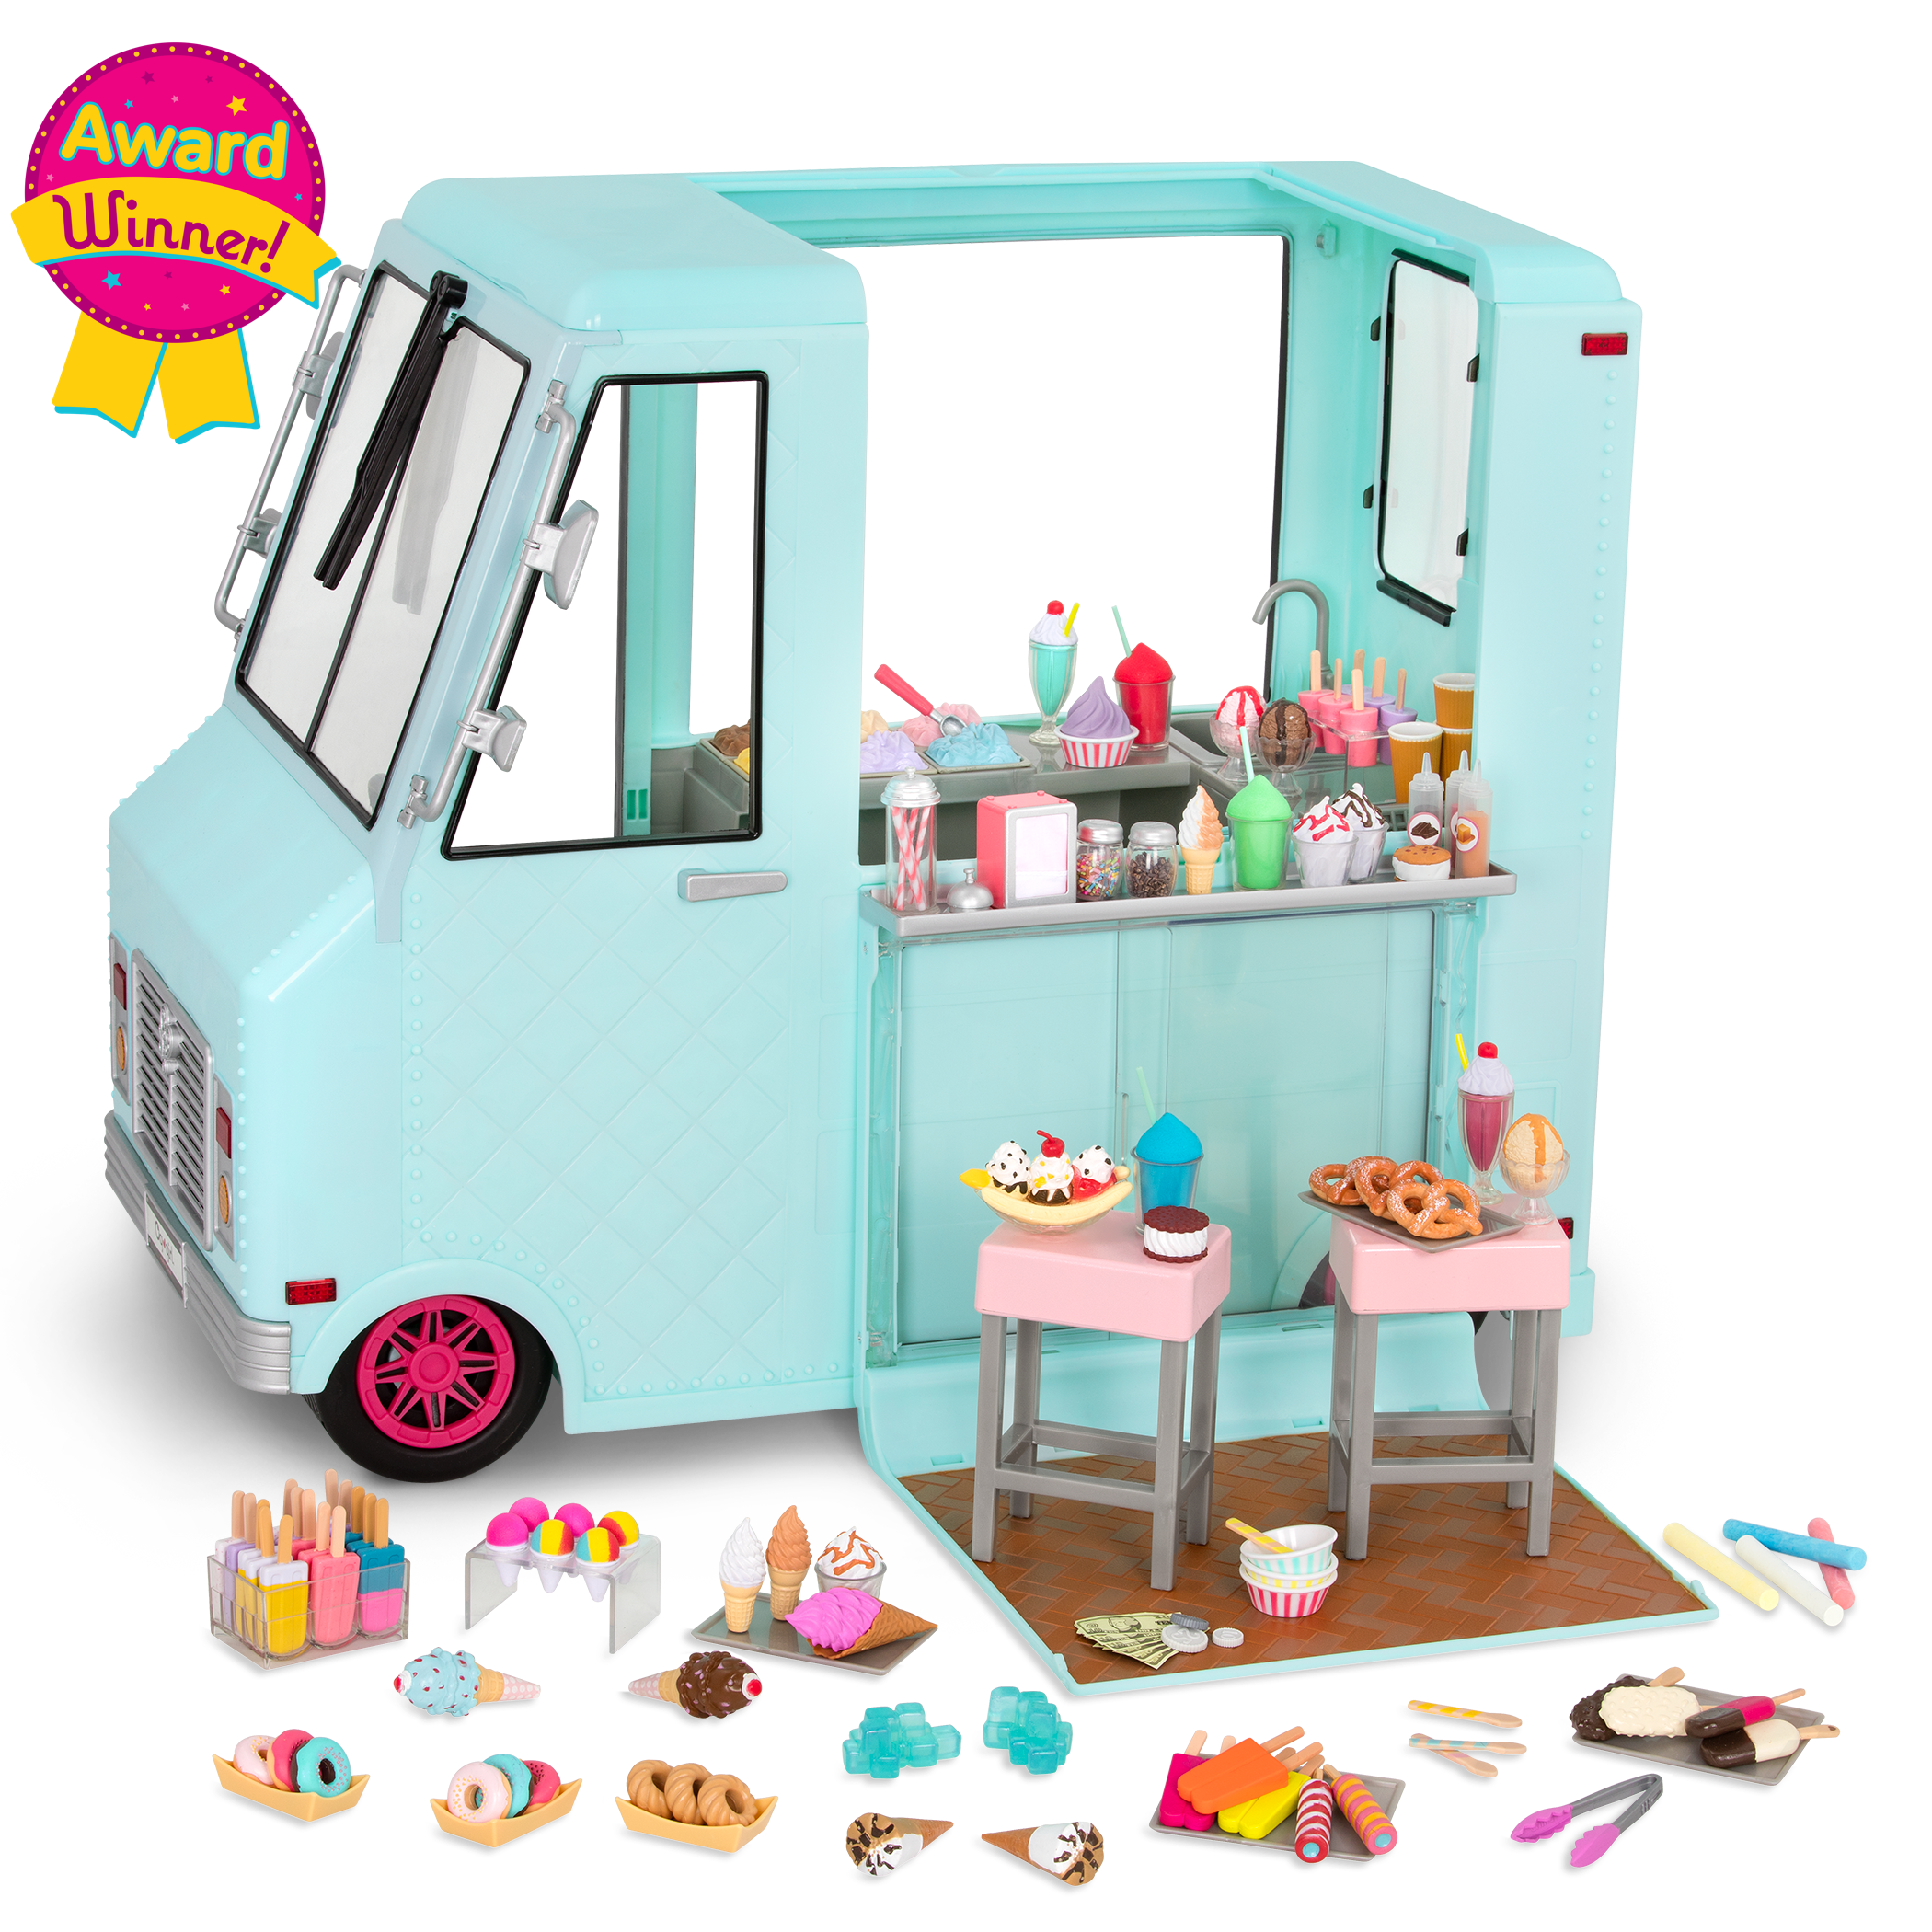 Sweet Stop Ice Cream Truck for 18-inch Dolls - Award Winning!